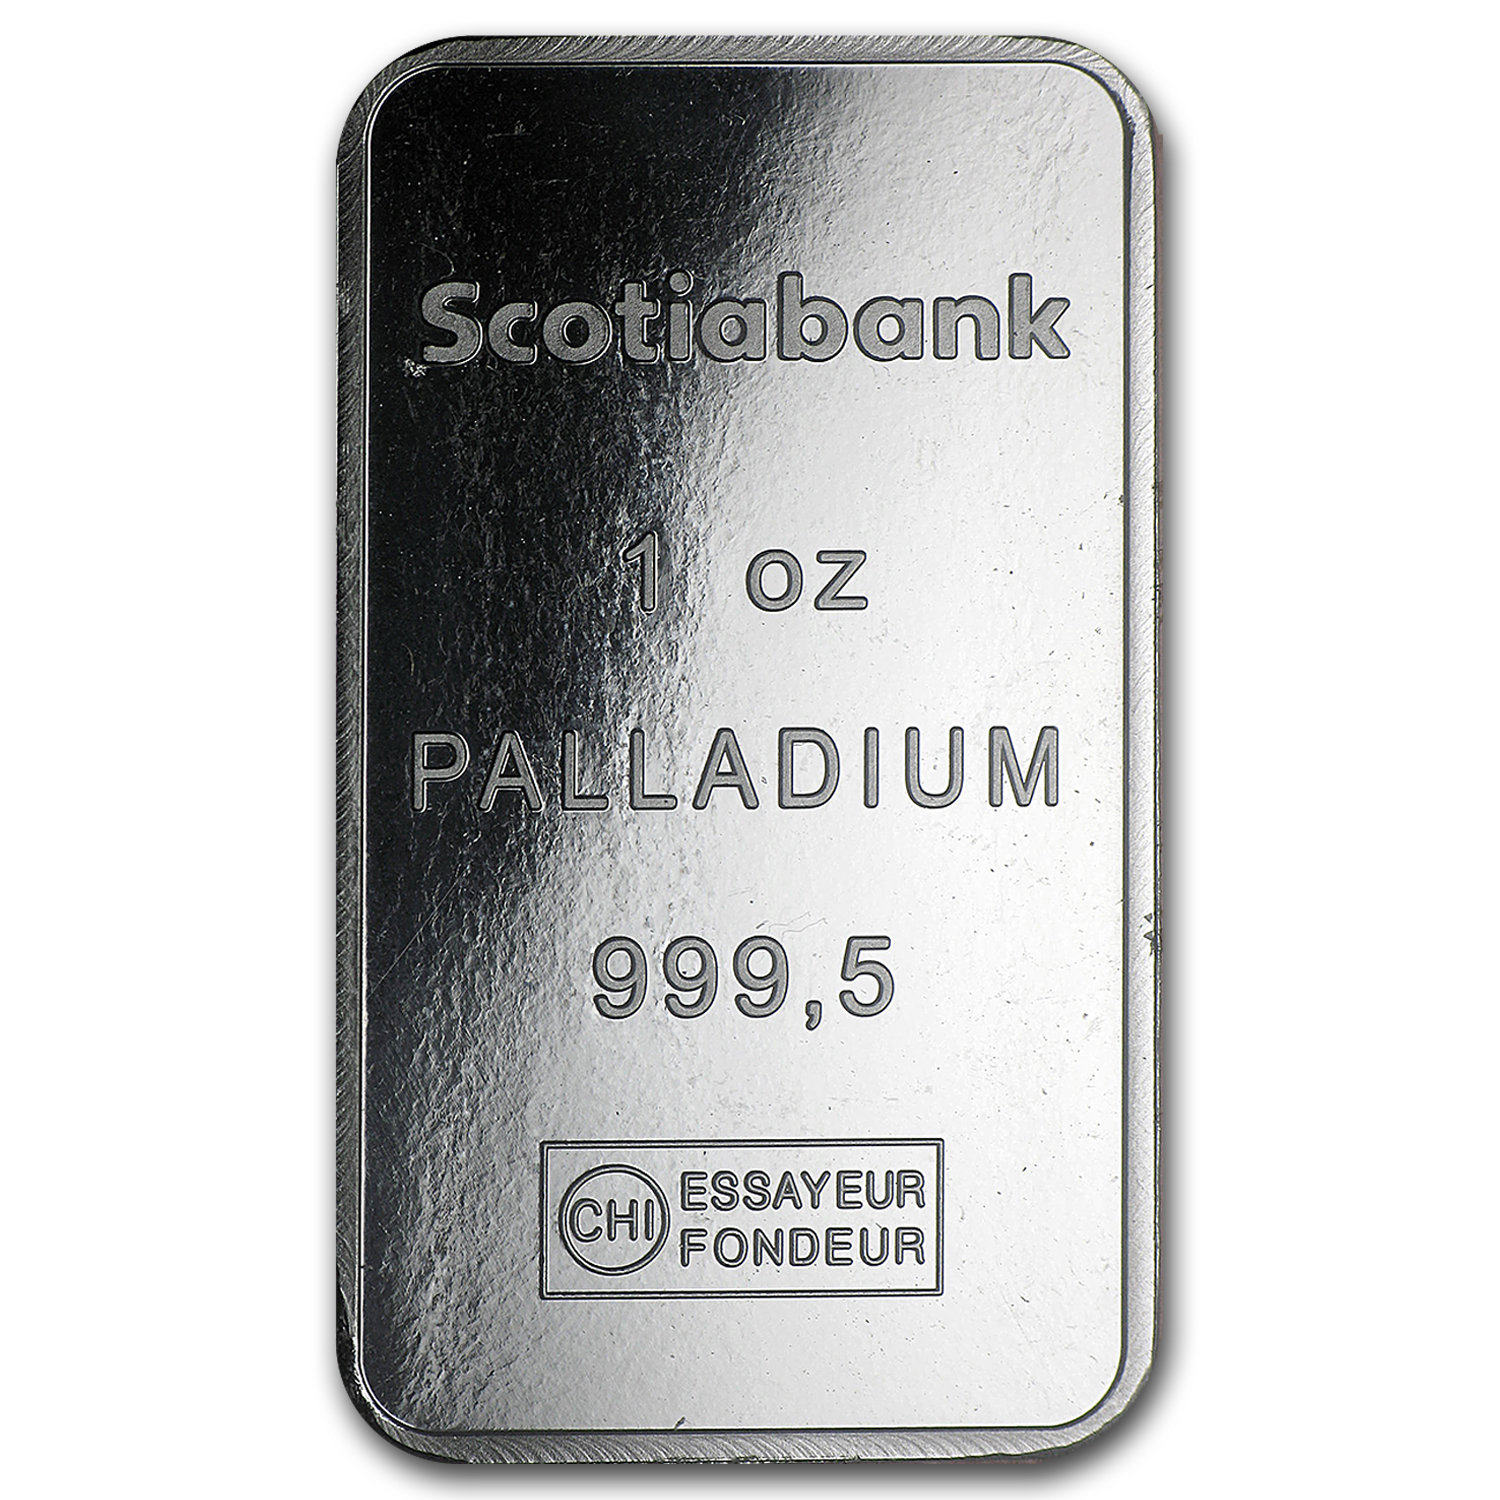 1 oz Palladium Bar - Scotiabank (In Assay)